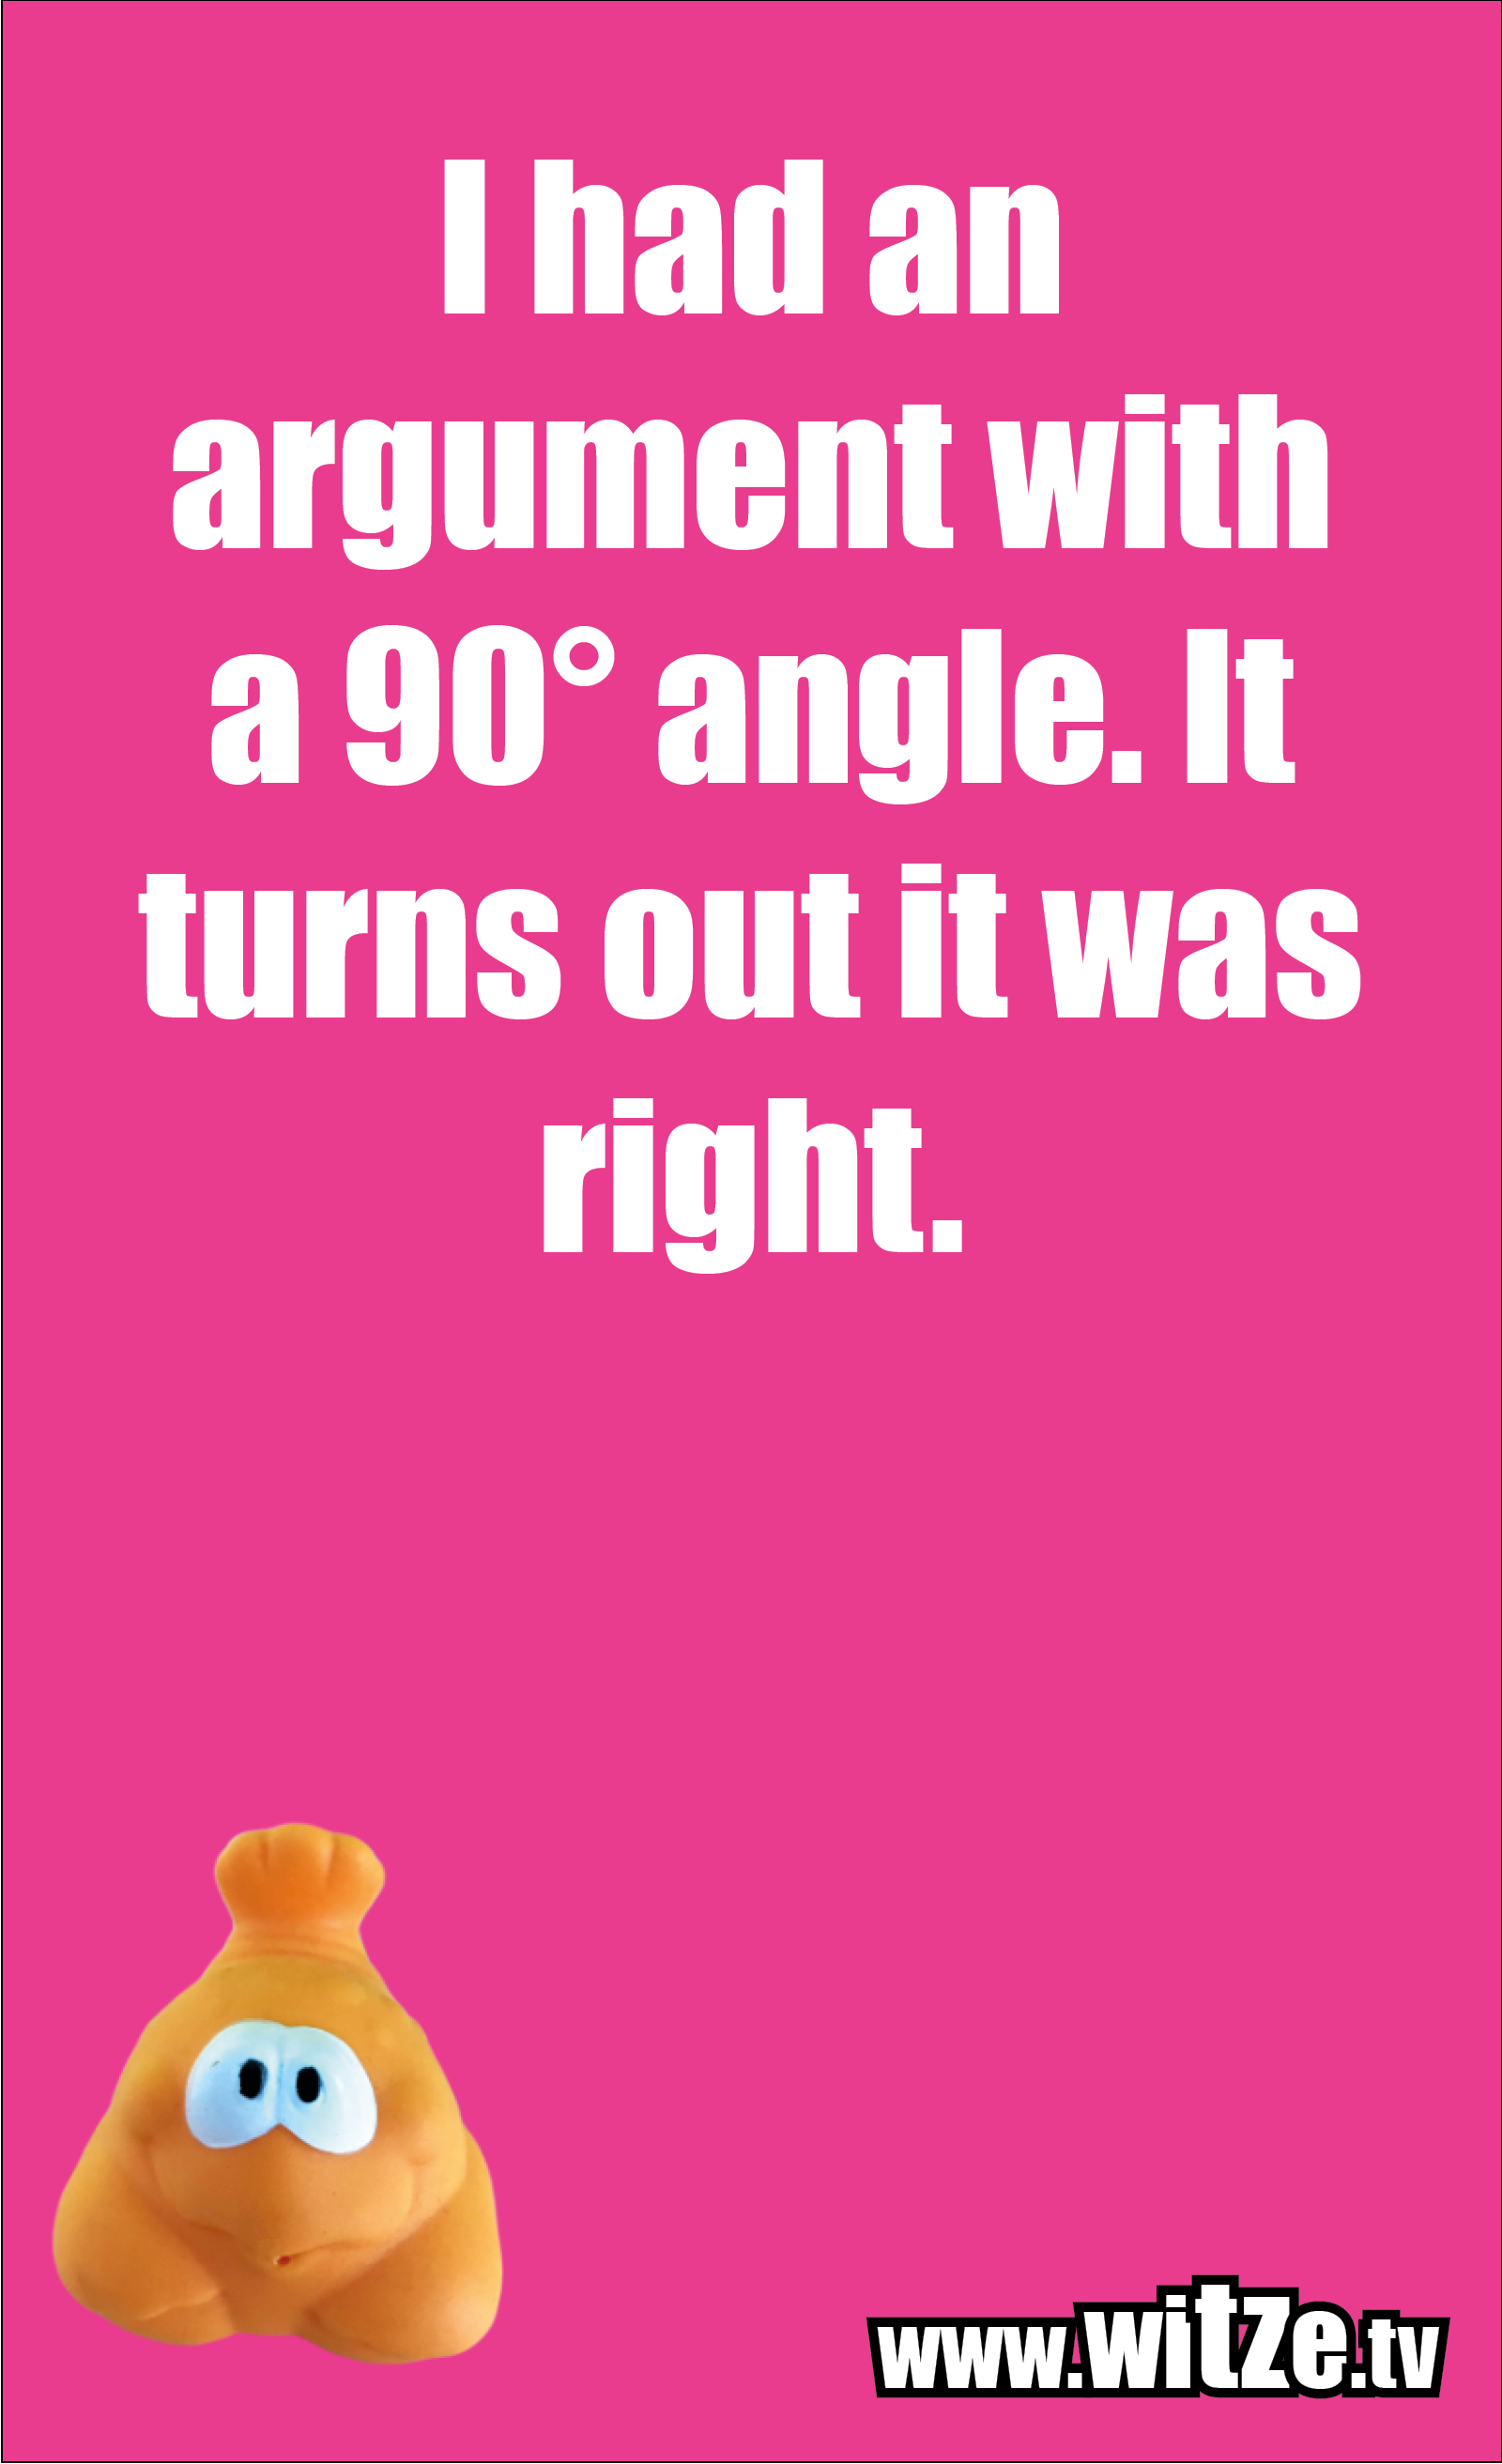 Math joke… I had an argument with a 90° angle. It turns out it was right.